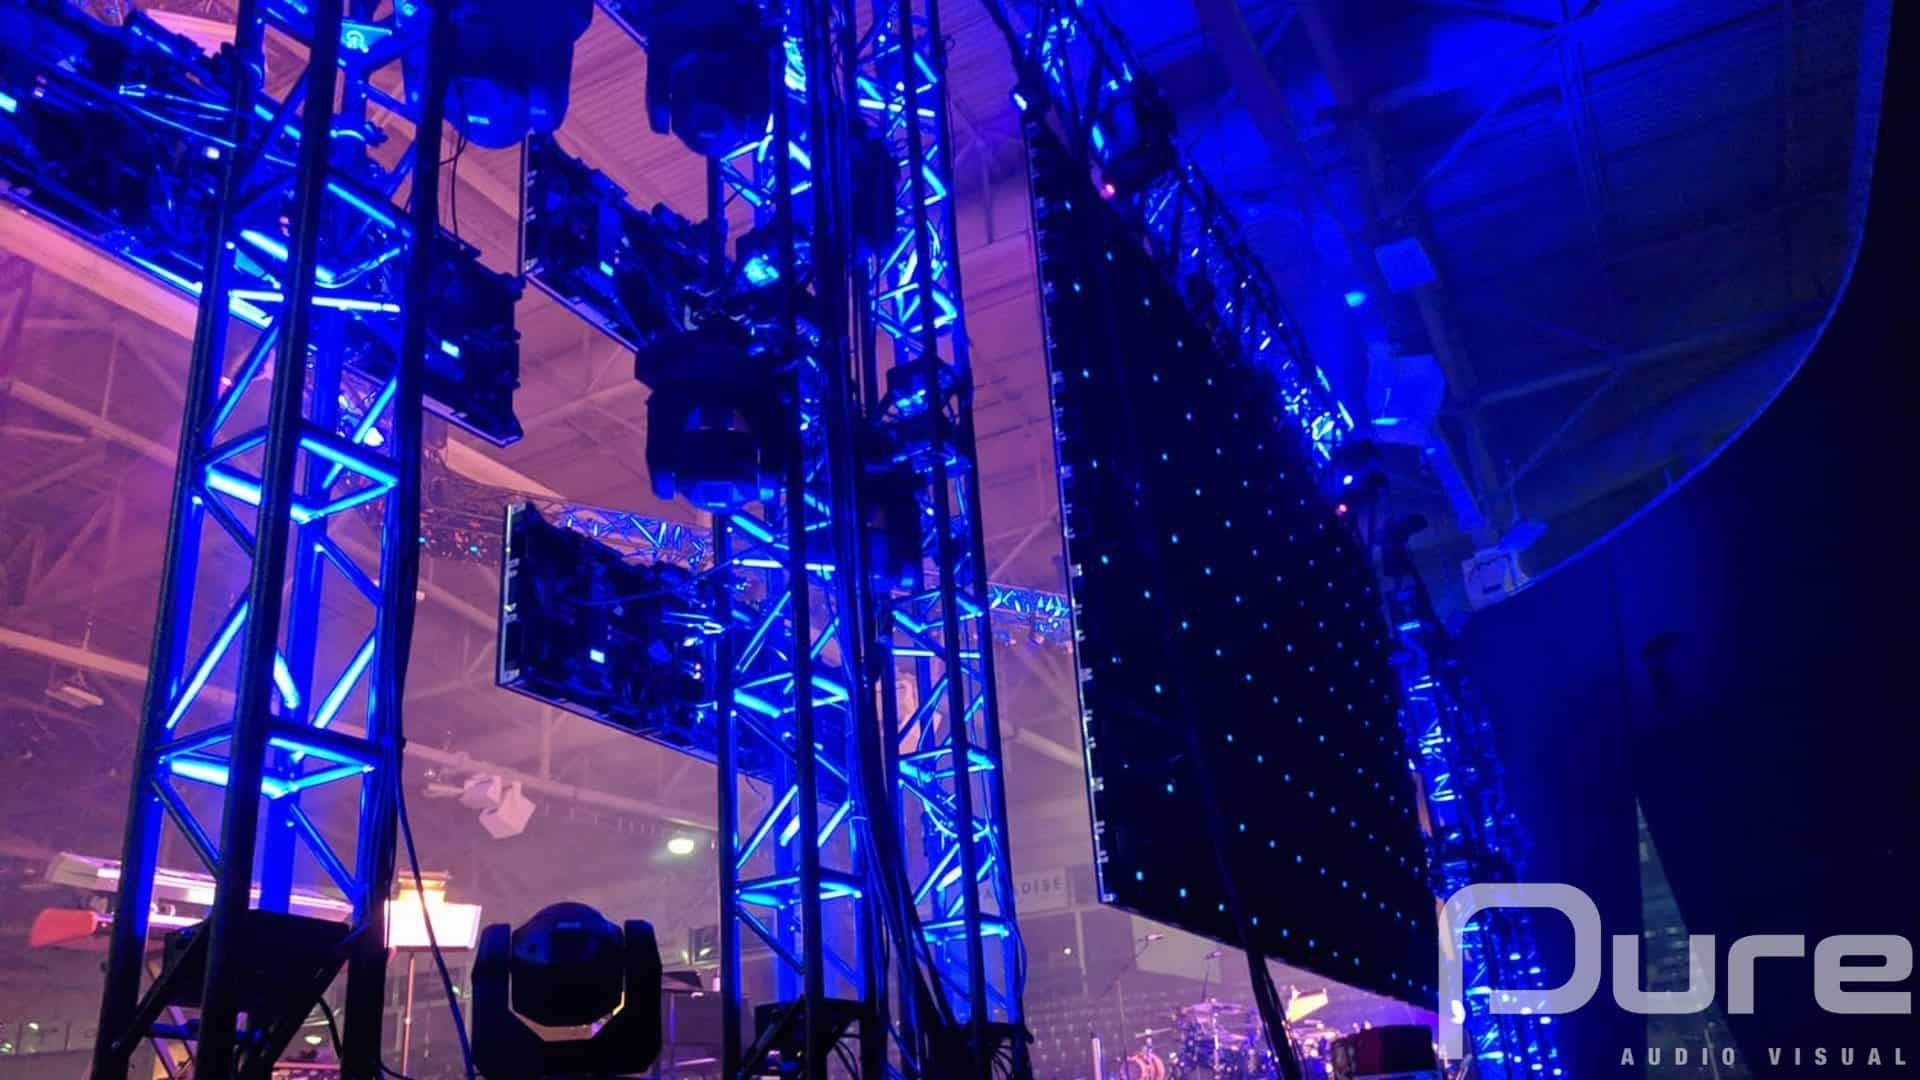 arena concert. led video wall. lighting. Truss